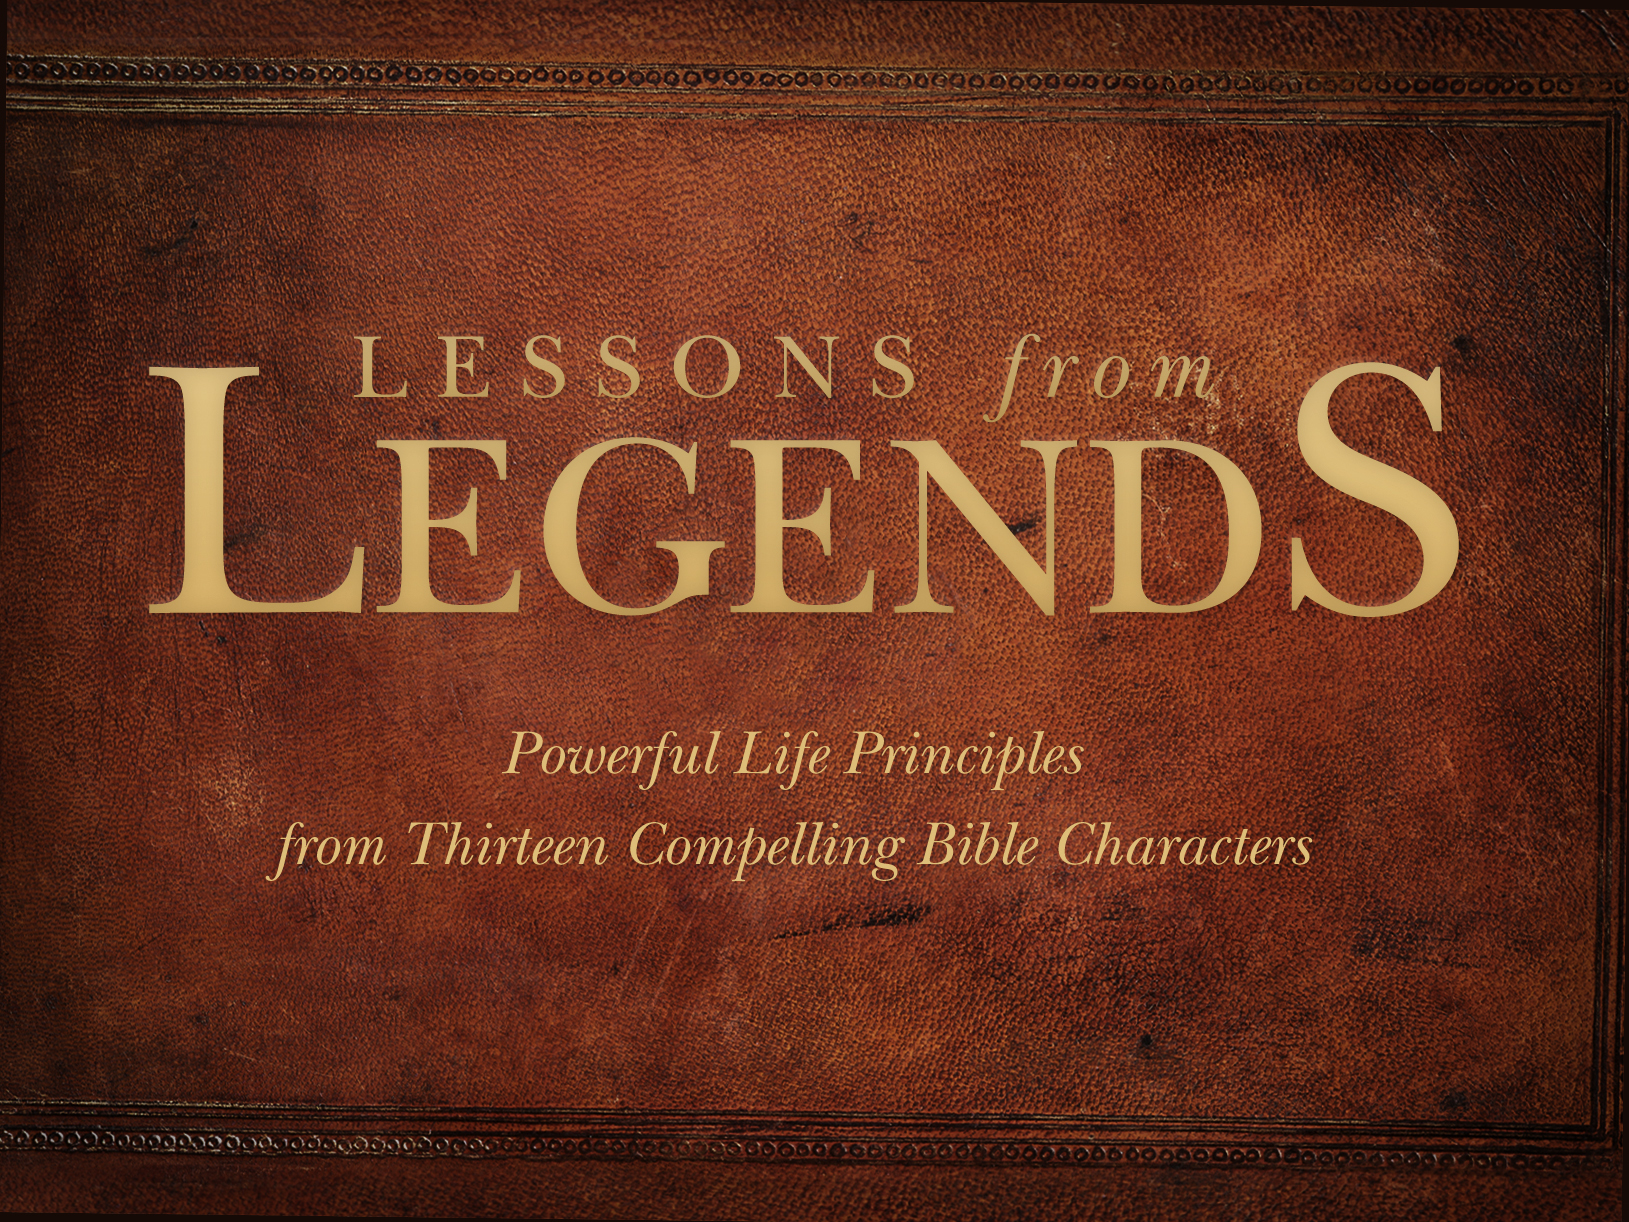 Lessons from legends  title